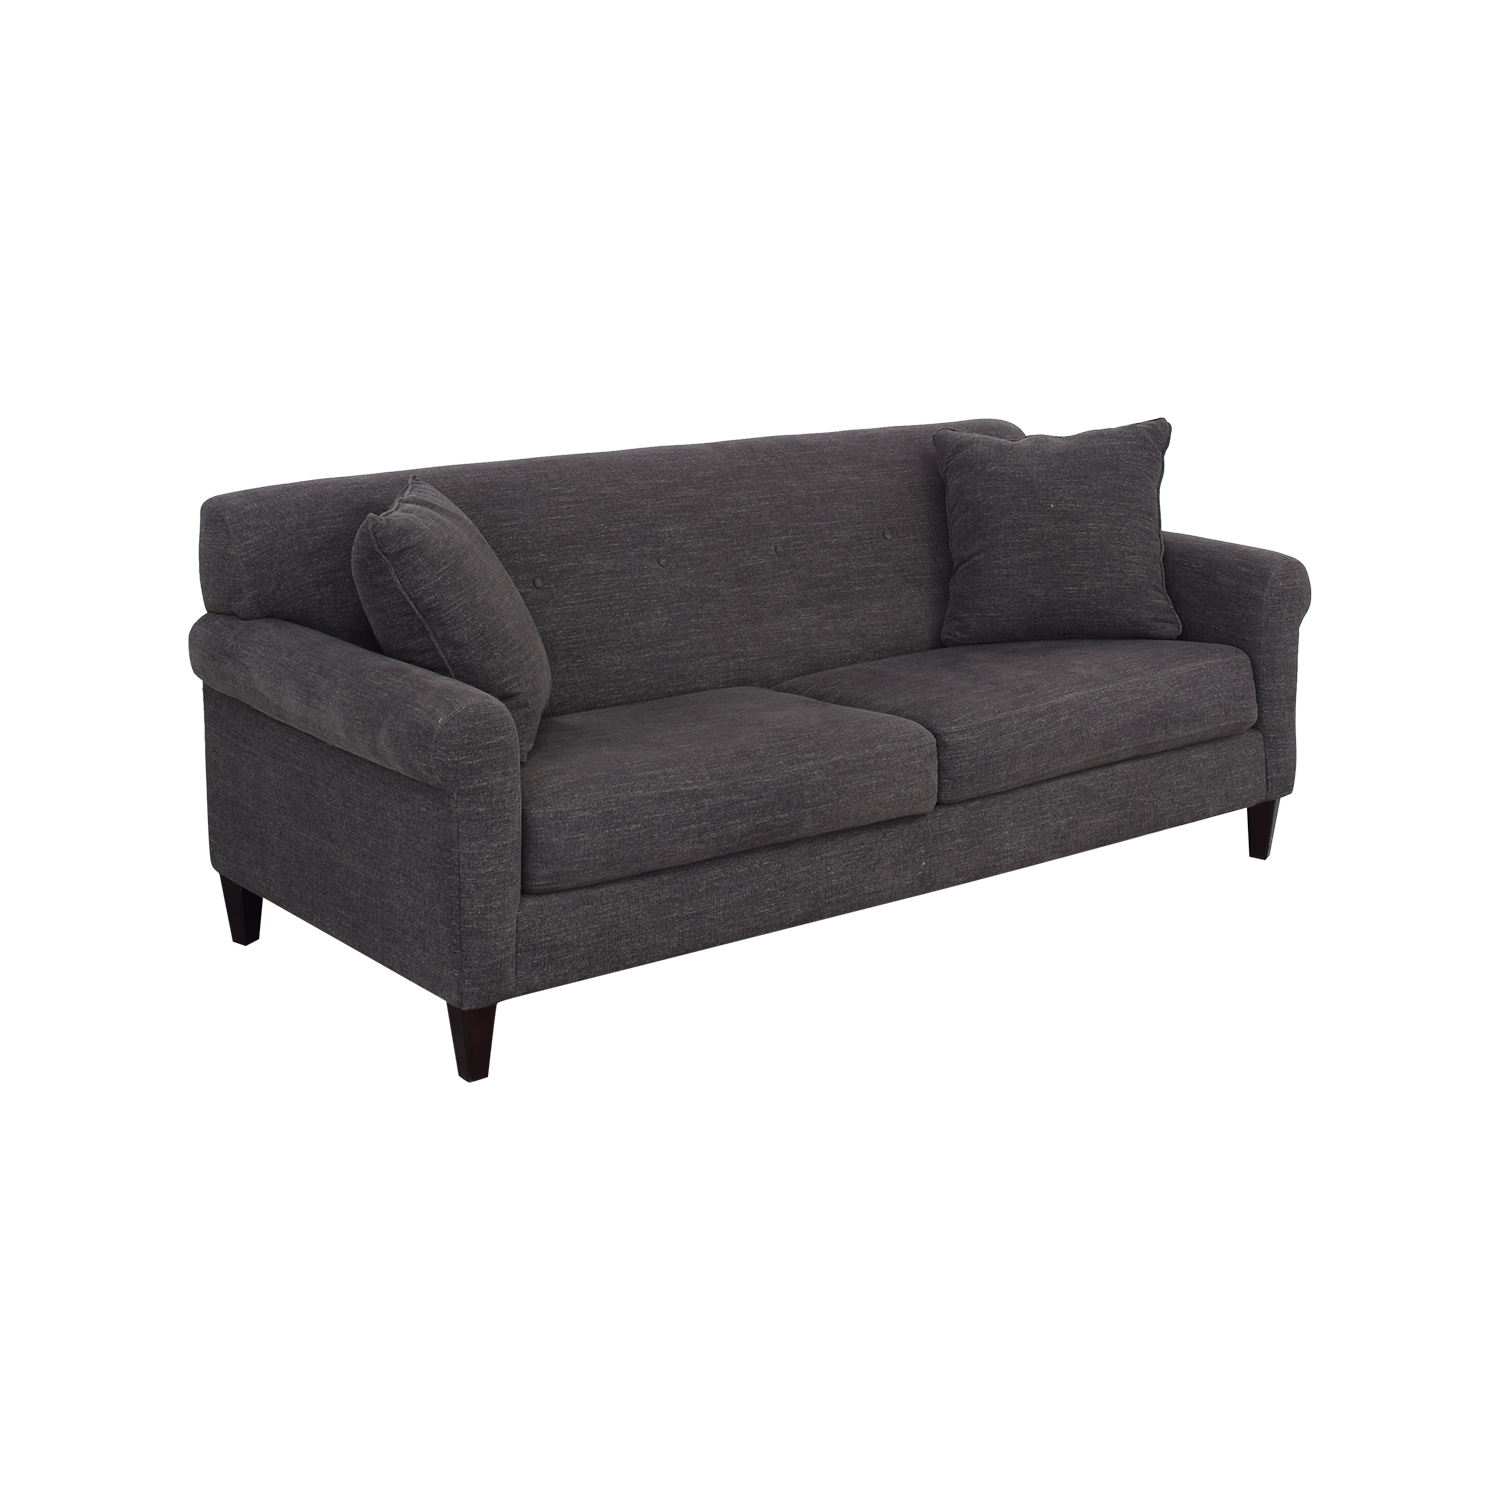 Bauhaus Furniture Bauhaus Furniture Sofa with Ottoman on sale